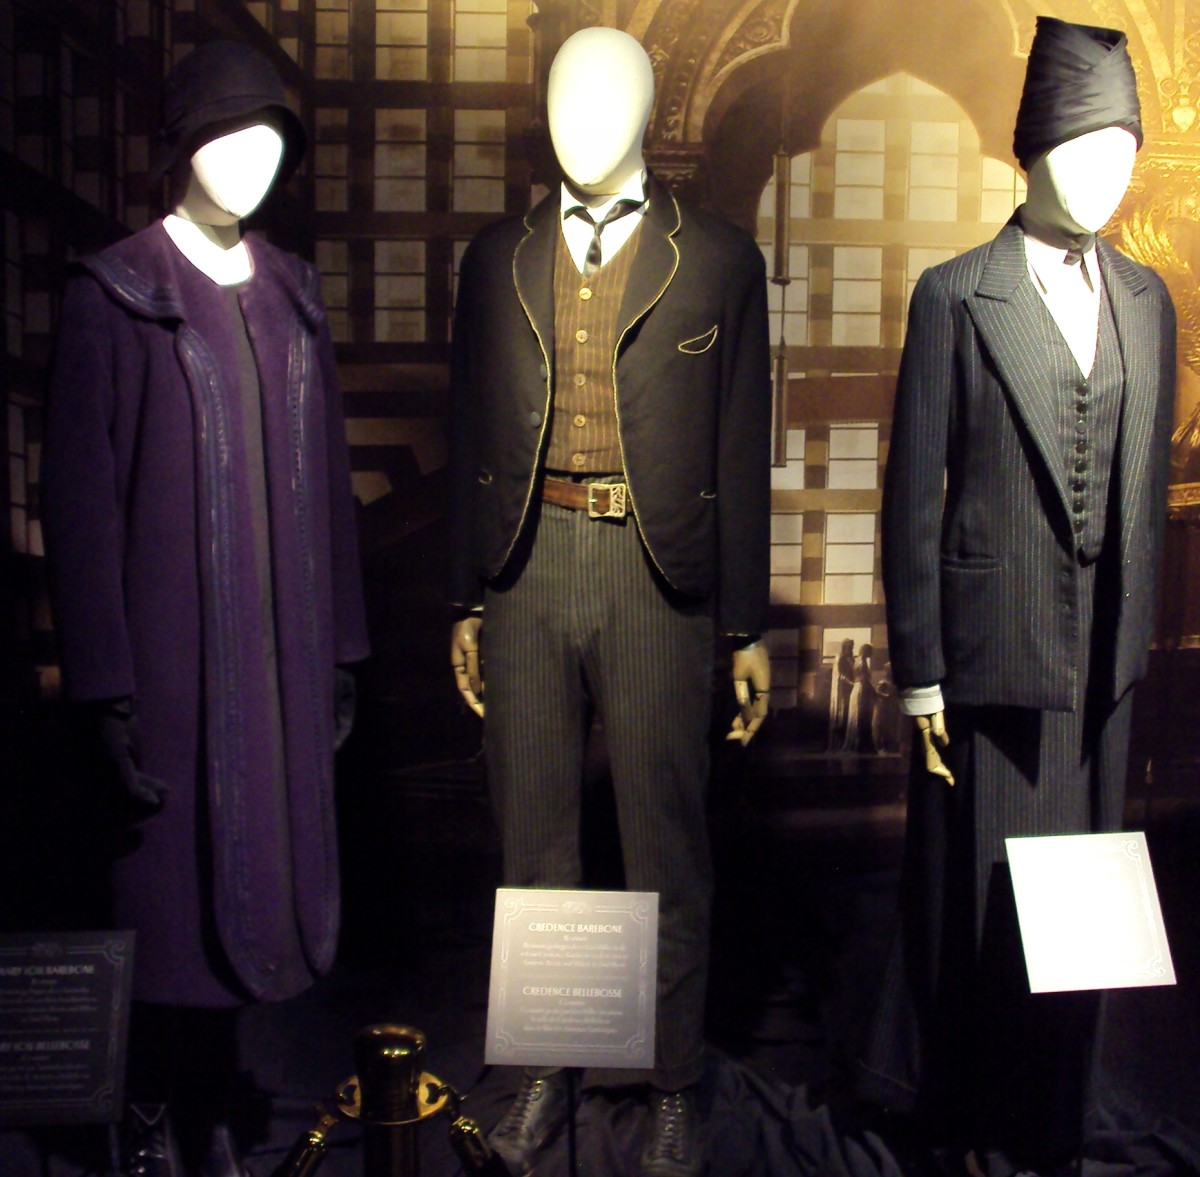 If you only have a robe of an unusual colour, like purple, why not dress as one of the characters from the new Fantastic Beasts franchise?